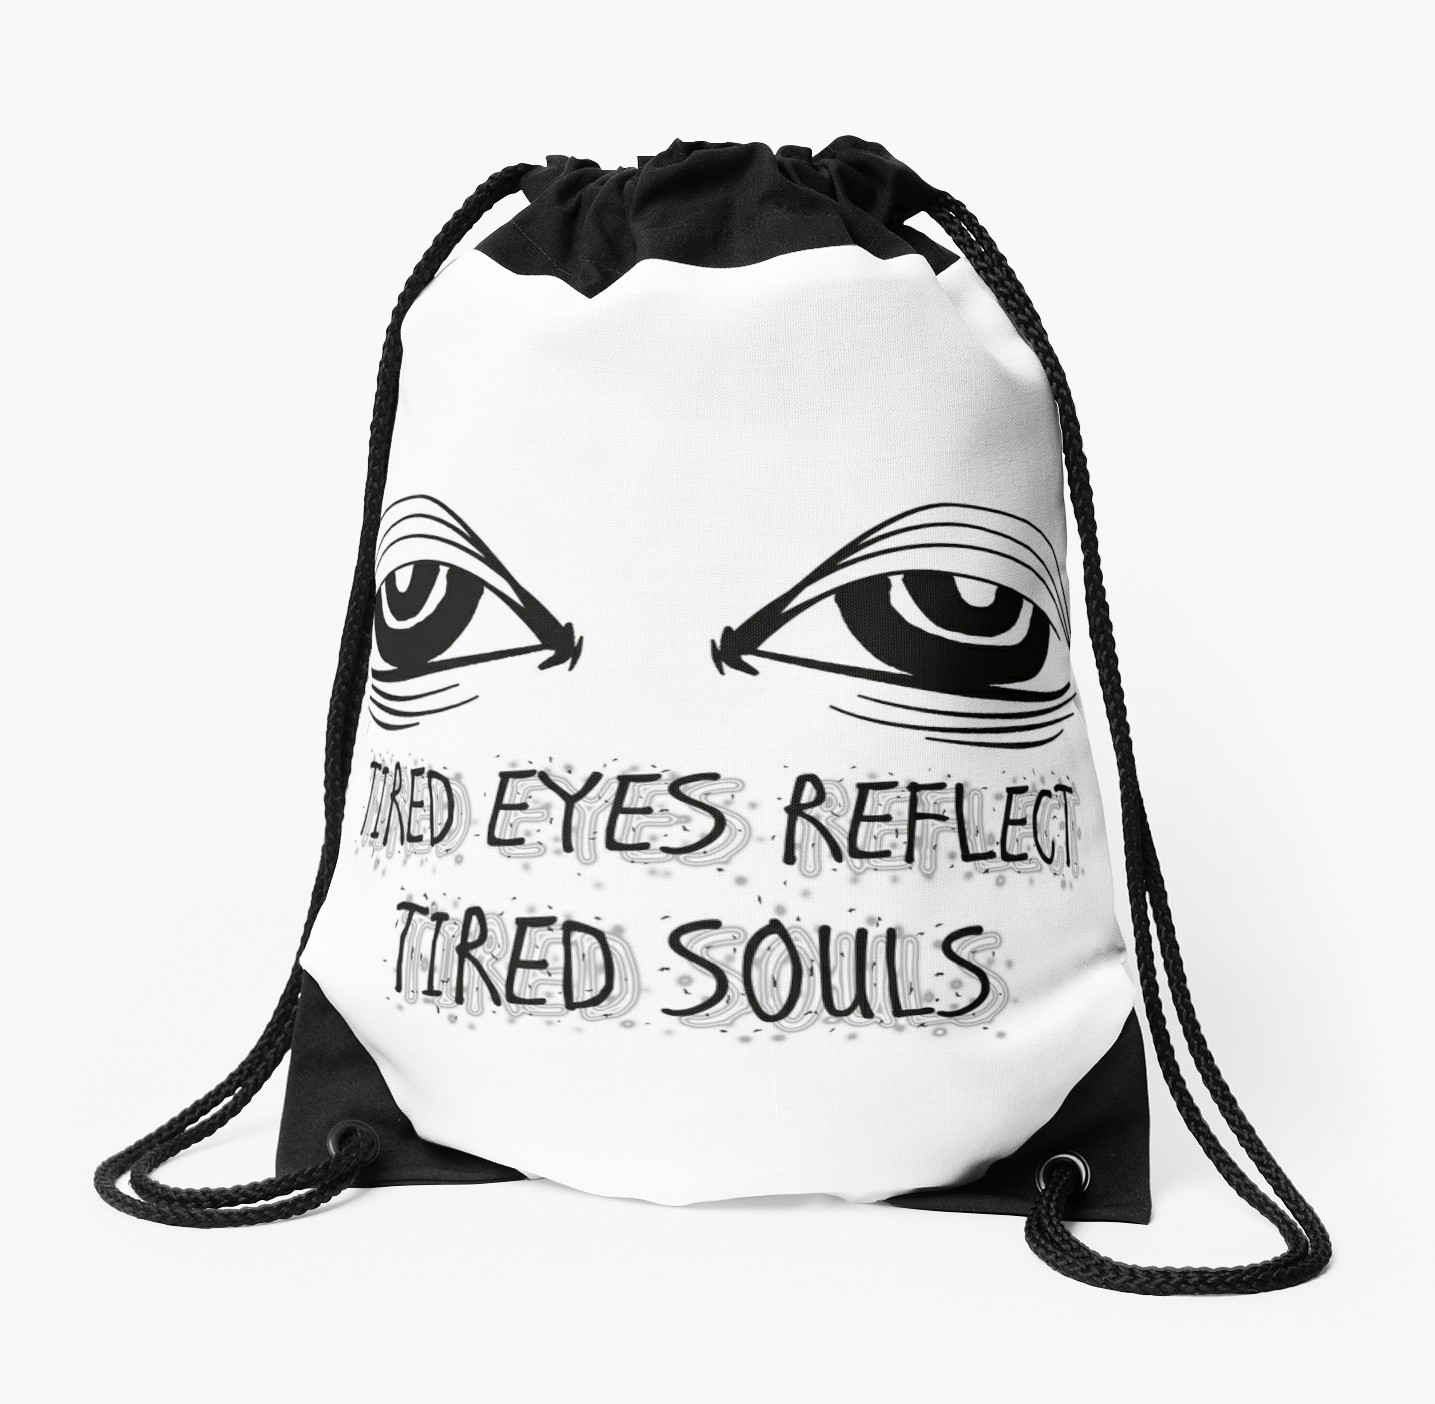 1435x1404 Tired Eyes Reflect Tired Souls Drawstring Bags By Mari Nicole